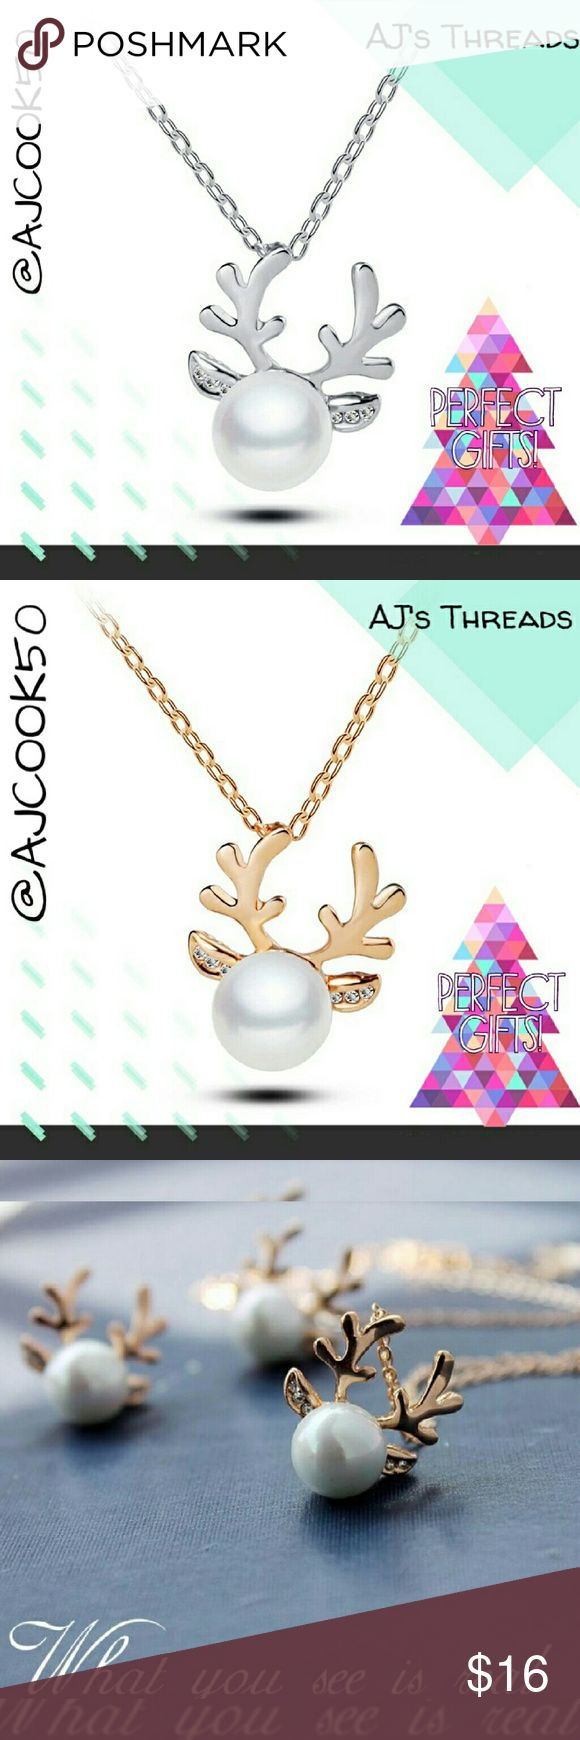 Coming Soon??Reindeer Antler Drop Pearl Necklace This holiday festive drop necklace features a pearl inset and rhinestone jewels. Perfect for holiday parties,  white elephant gifts and stocking stuffers. Comes in gold and silver. Jewelry Necklaces